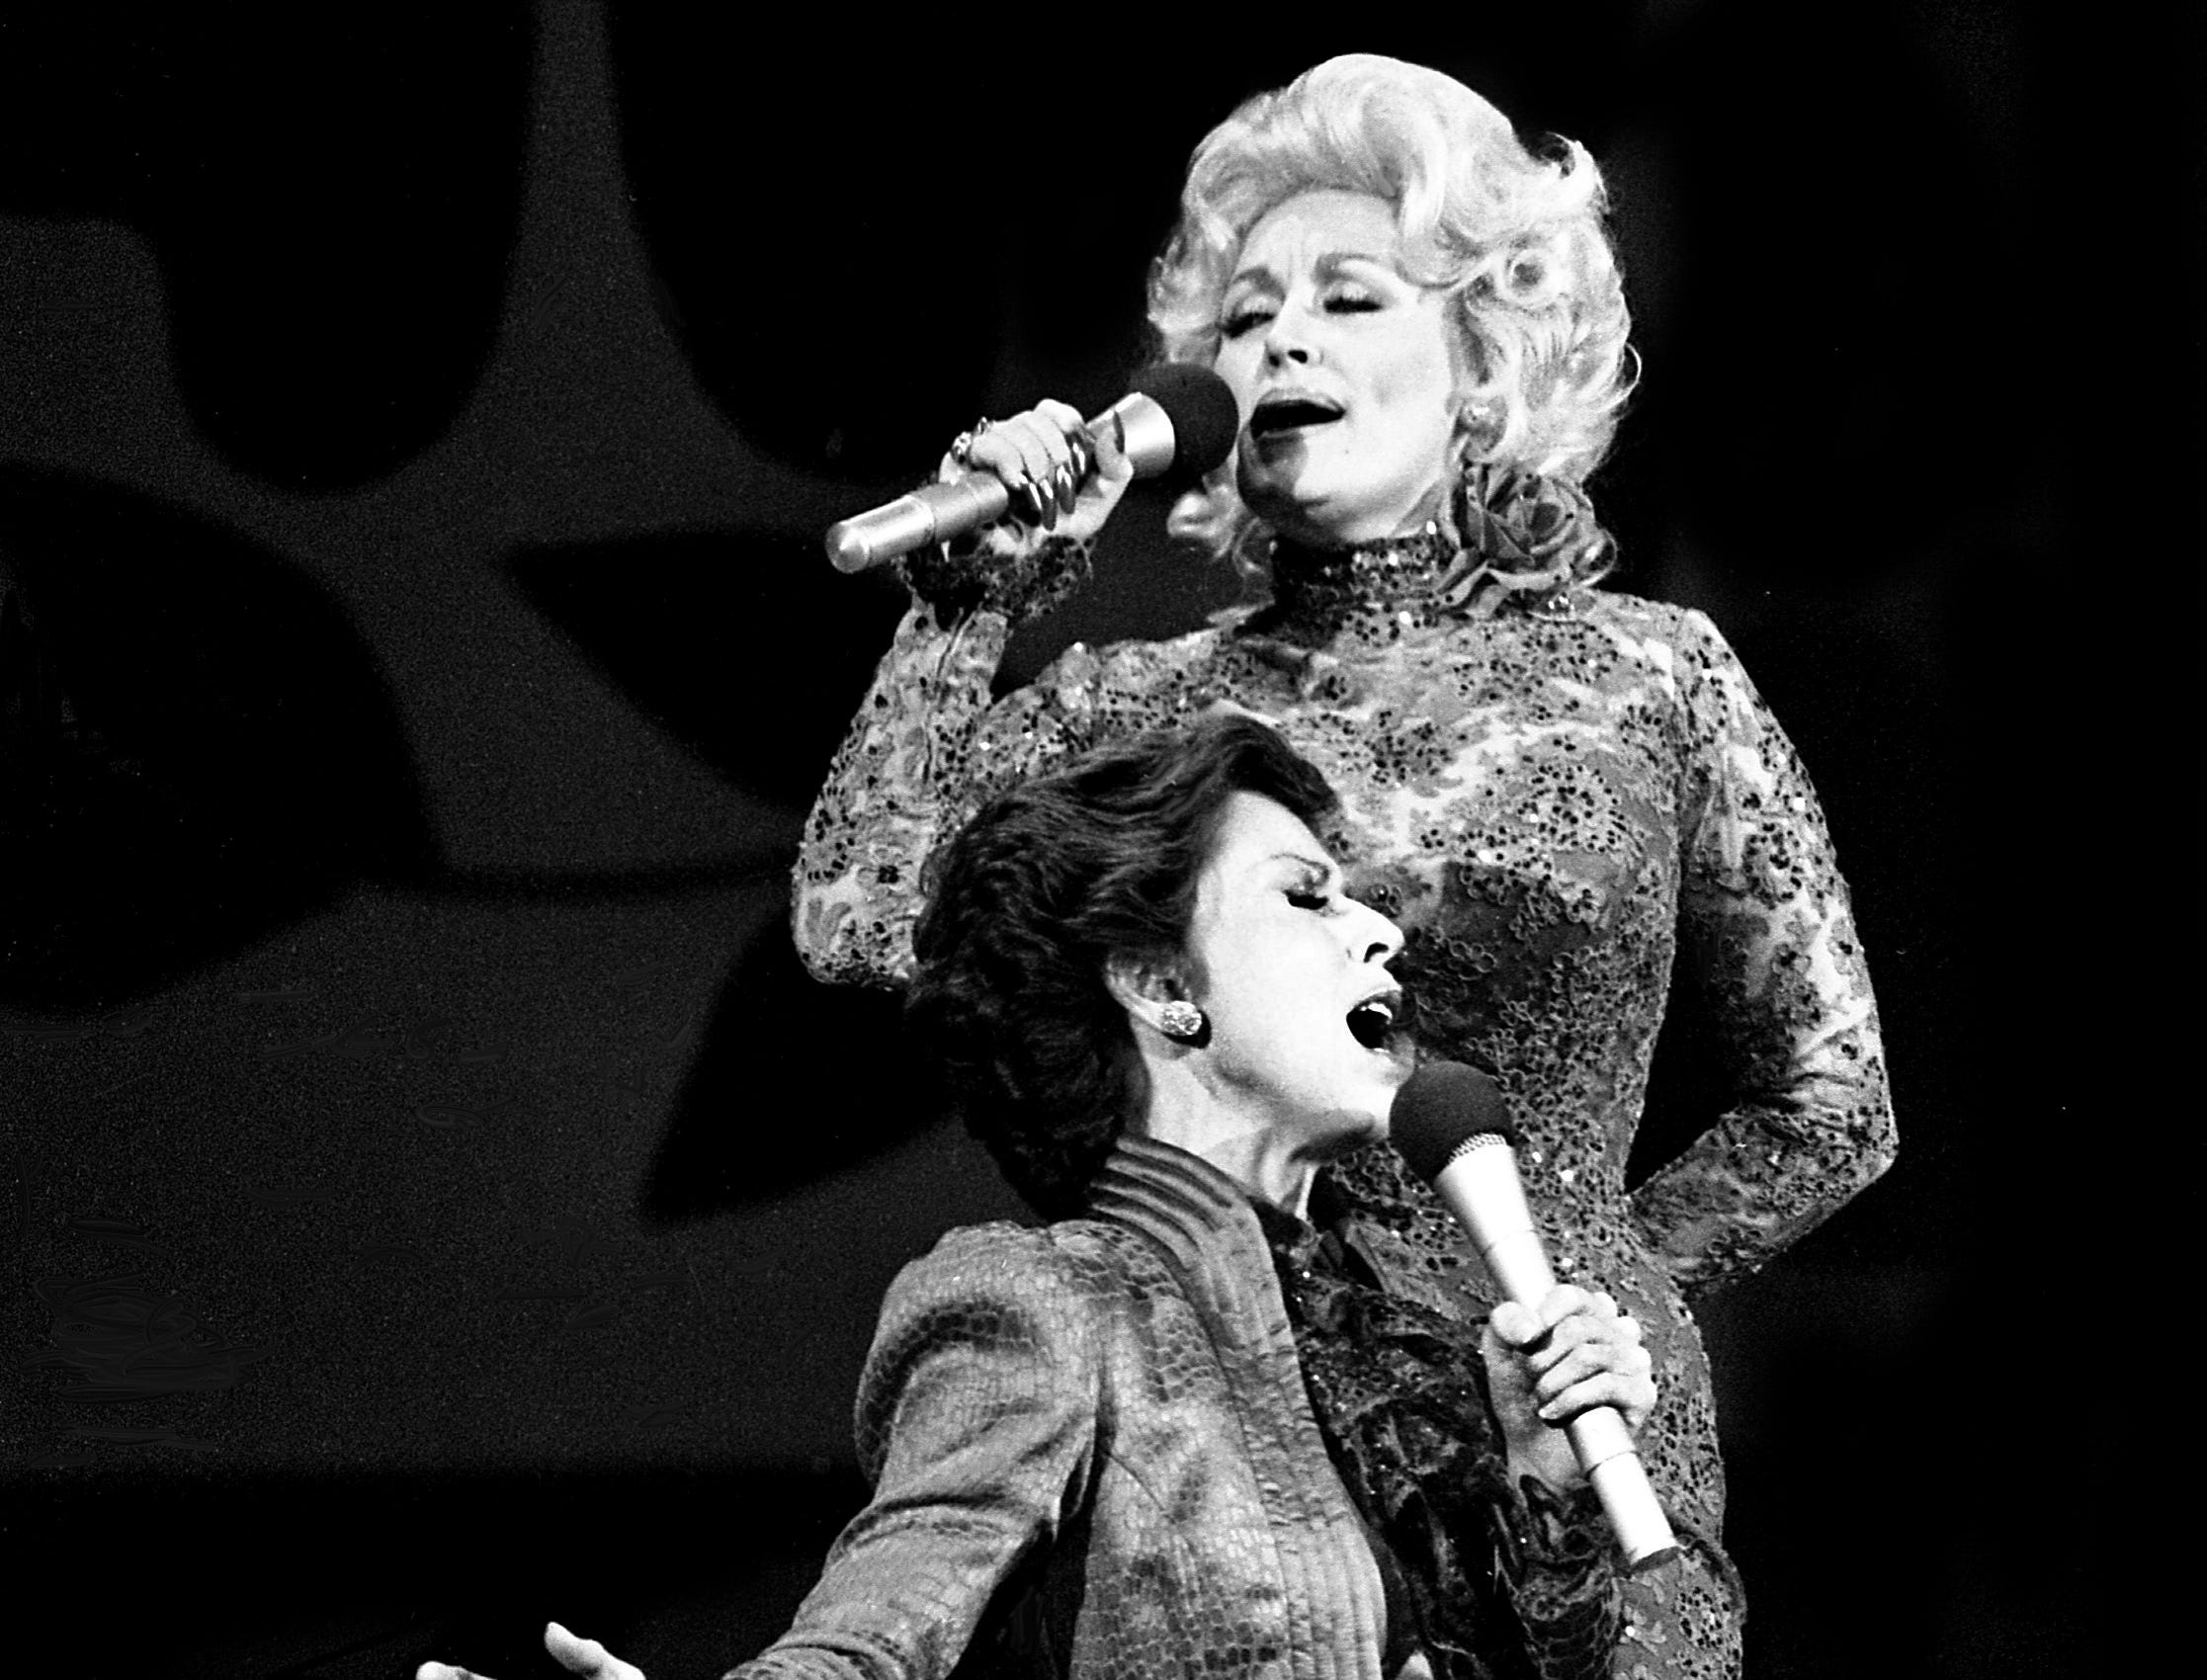 """Carol Burnett and Dolly Parton are performing during their mock-melodramatic love song skit during the taping of the """"Dolly and Carol in Nashville"""" television special before a packed audience at the Grand Ole Opry House Jan. 10, 1979."""